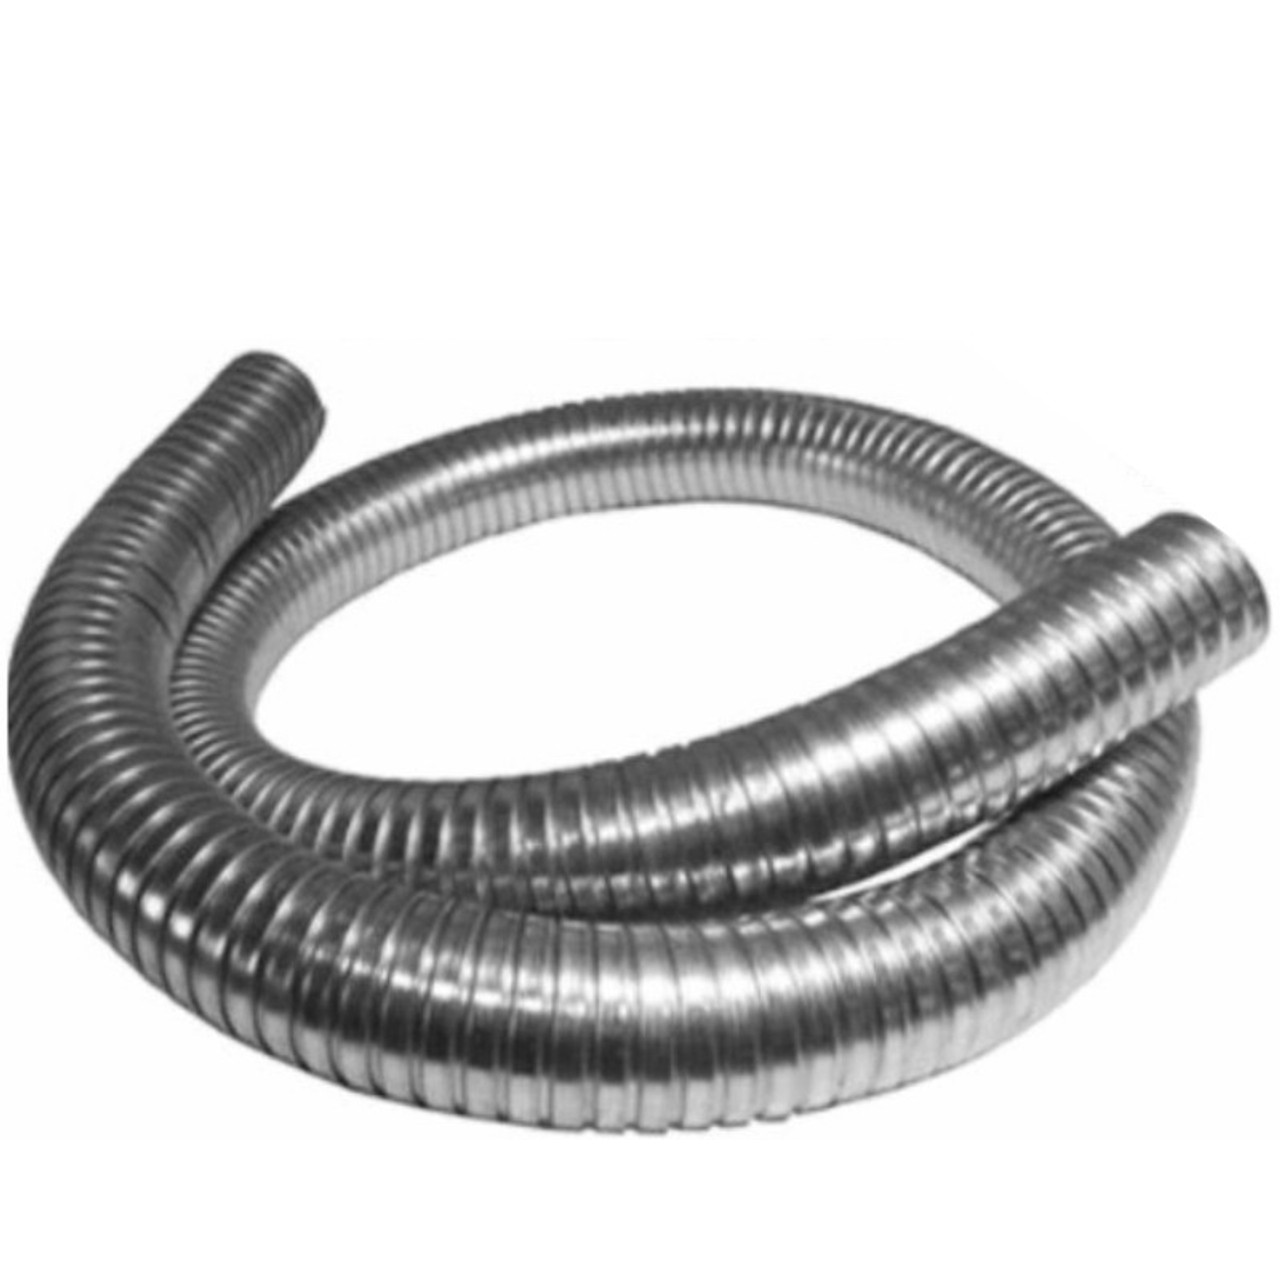 3 5 x 120 304 stainless steel flex exhaust hose sf 35120